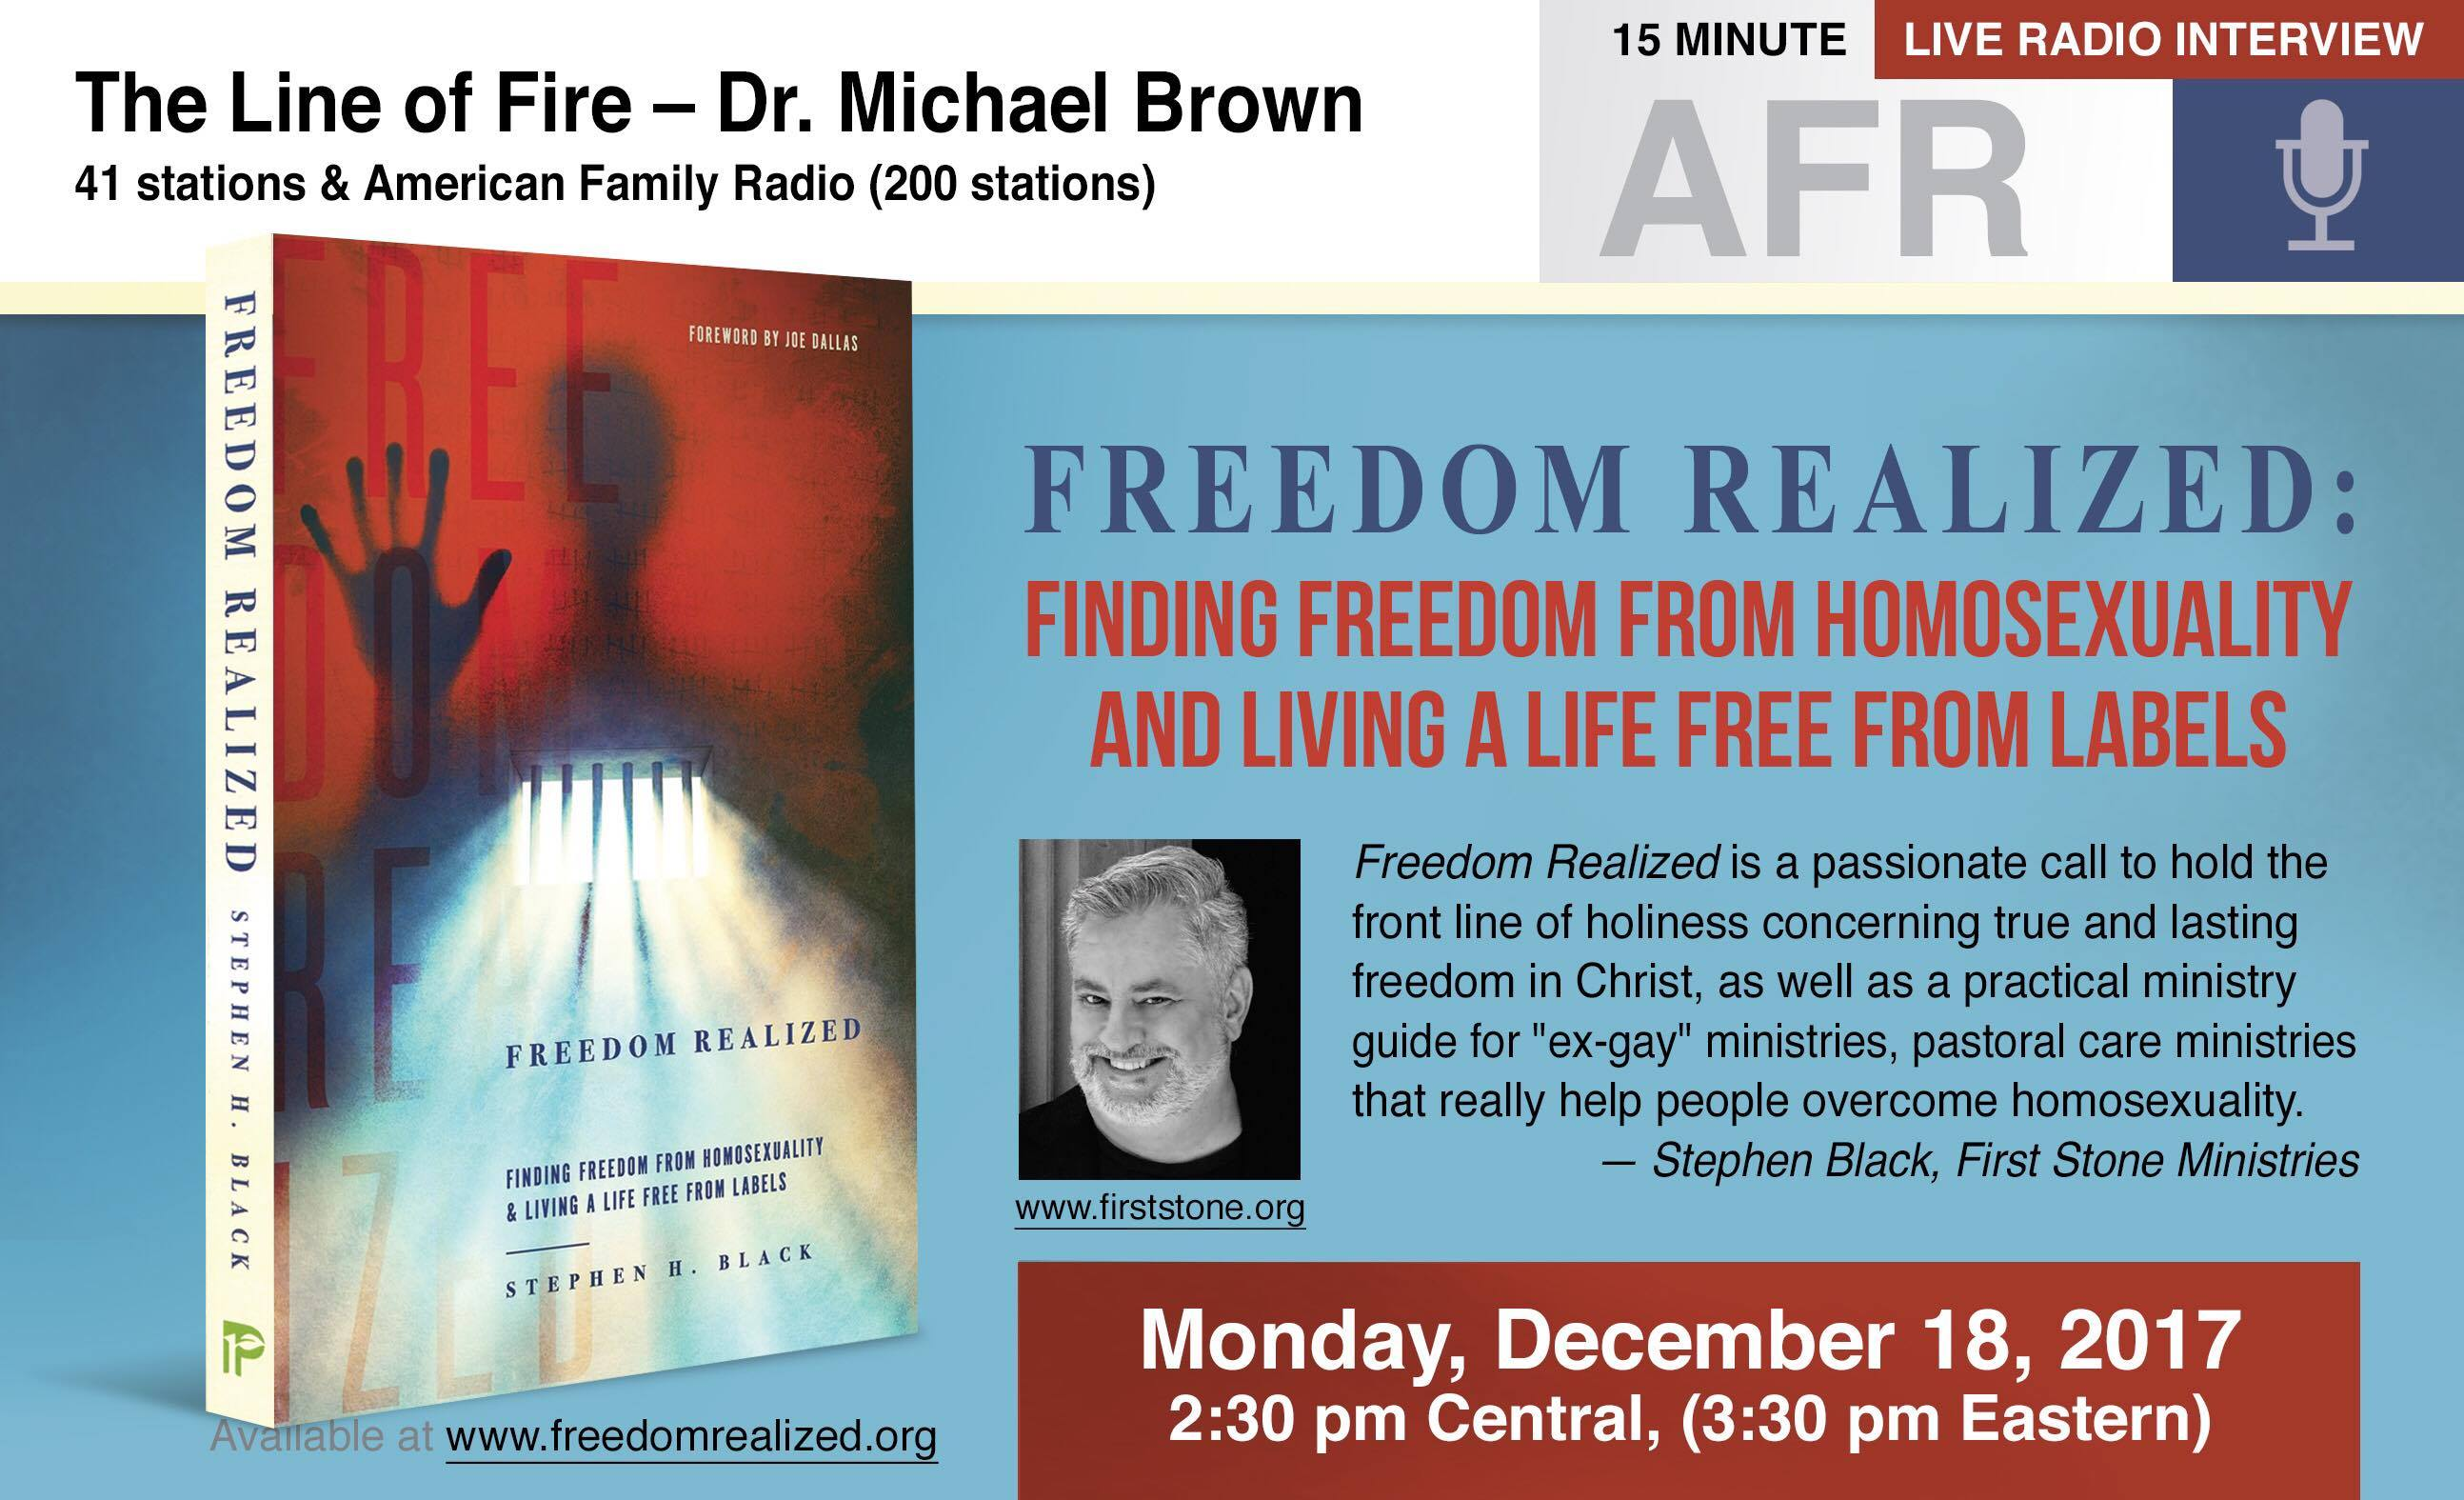 12 - FR_Ad_AFR_Network with Line of Fire_with Michael_Brown_Dec-18